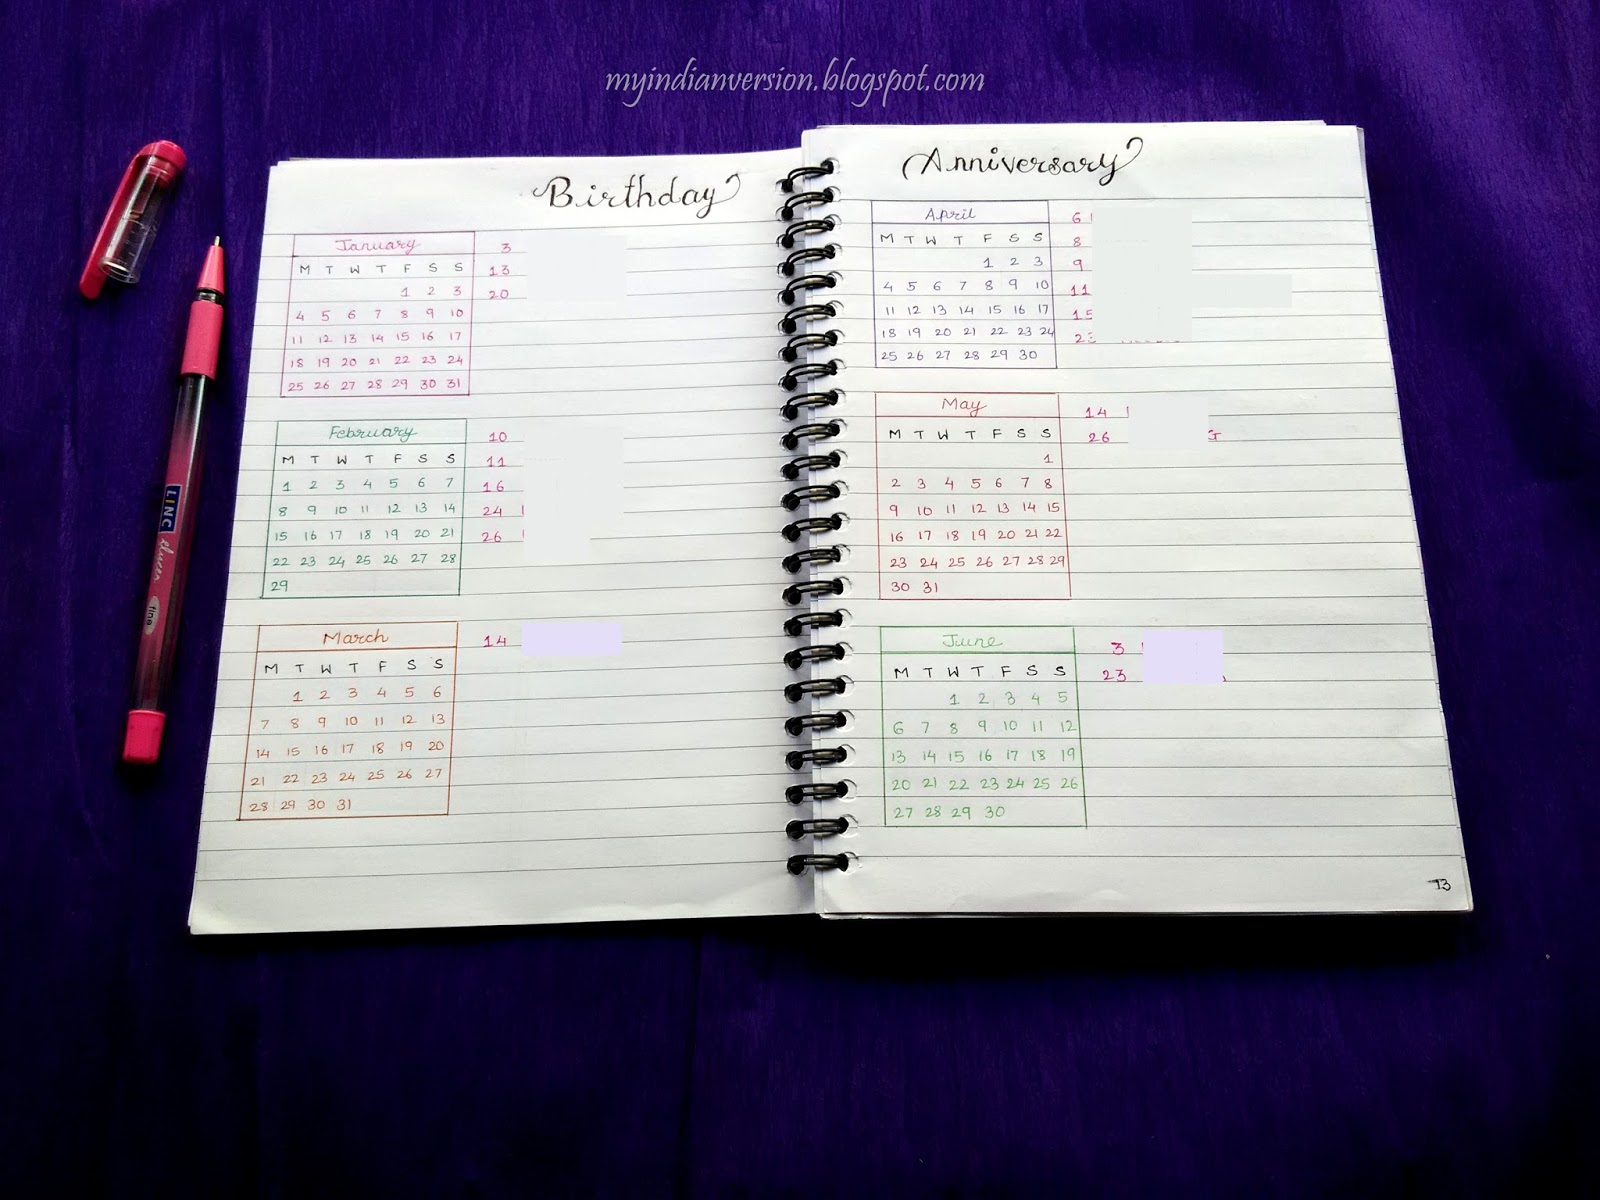 Calendar Layout Bullet Journal : My indian version bullet journal yearly calendar and